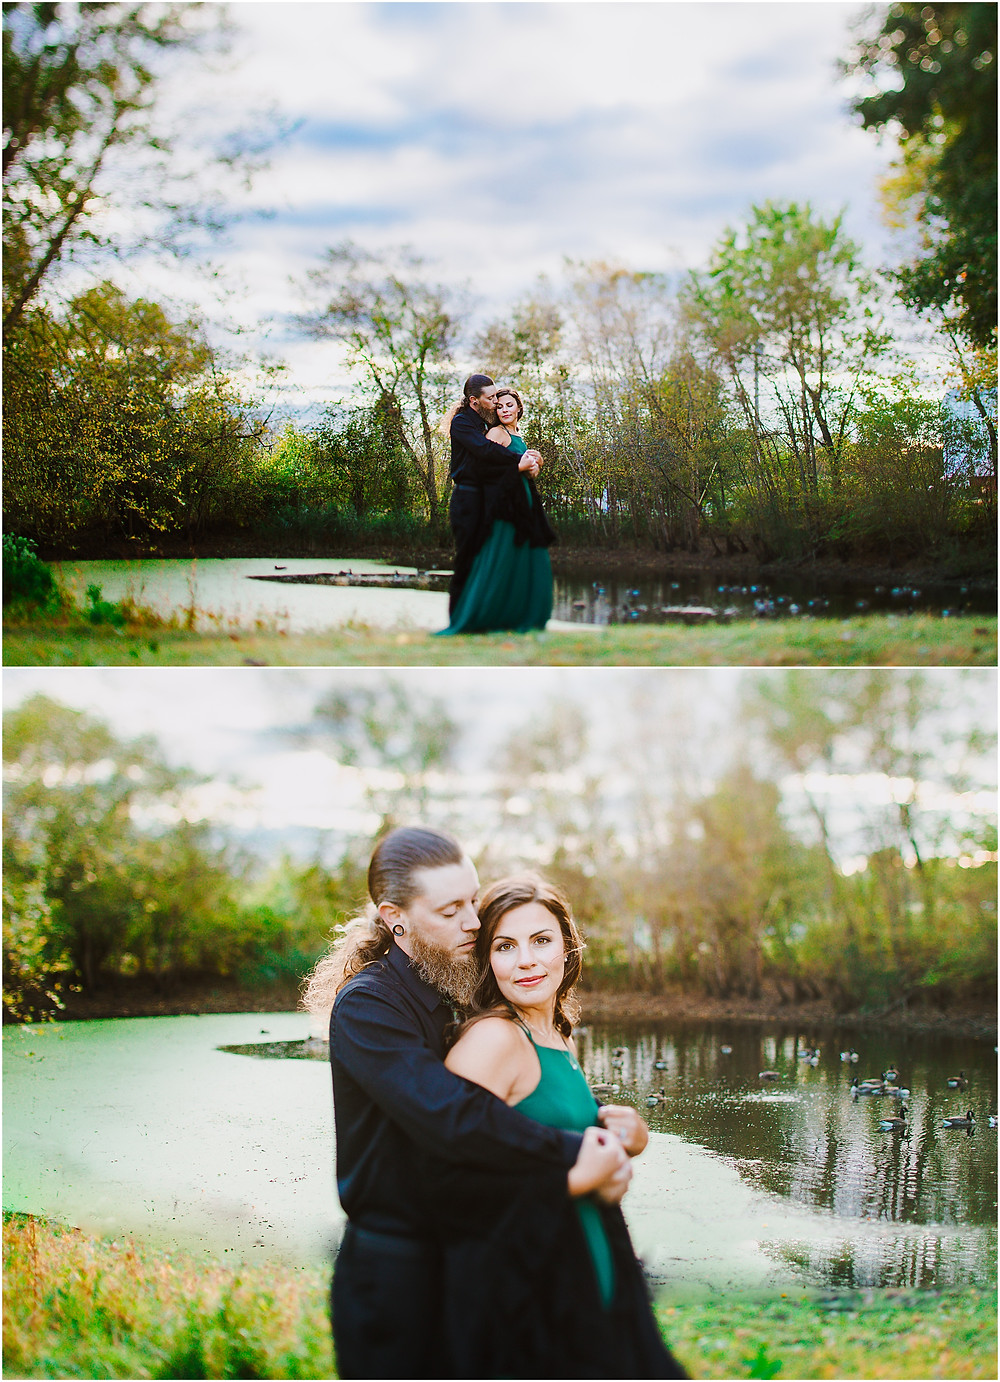 Romantic Tilt-Shift Portrait at Kinder Farm Park - Annapolis wedding photographer